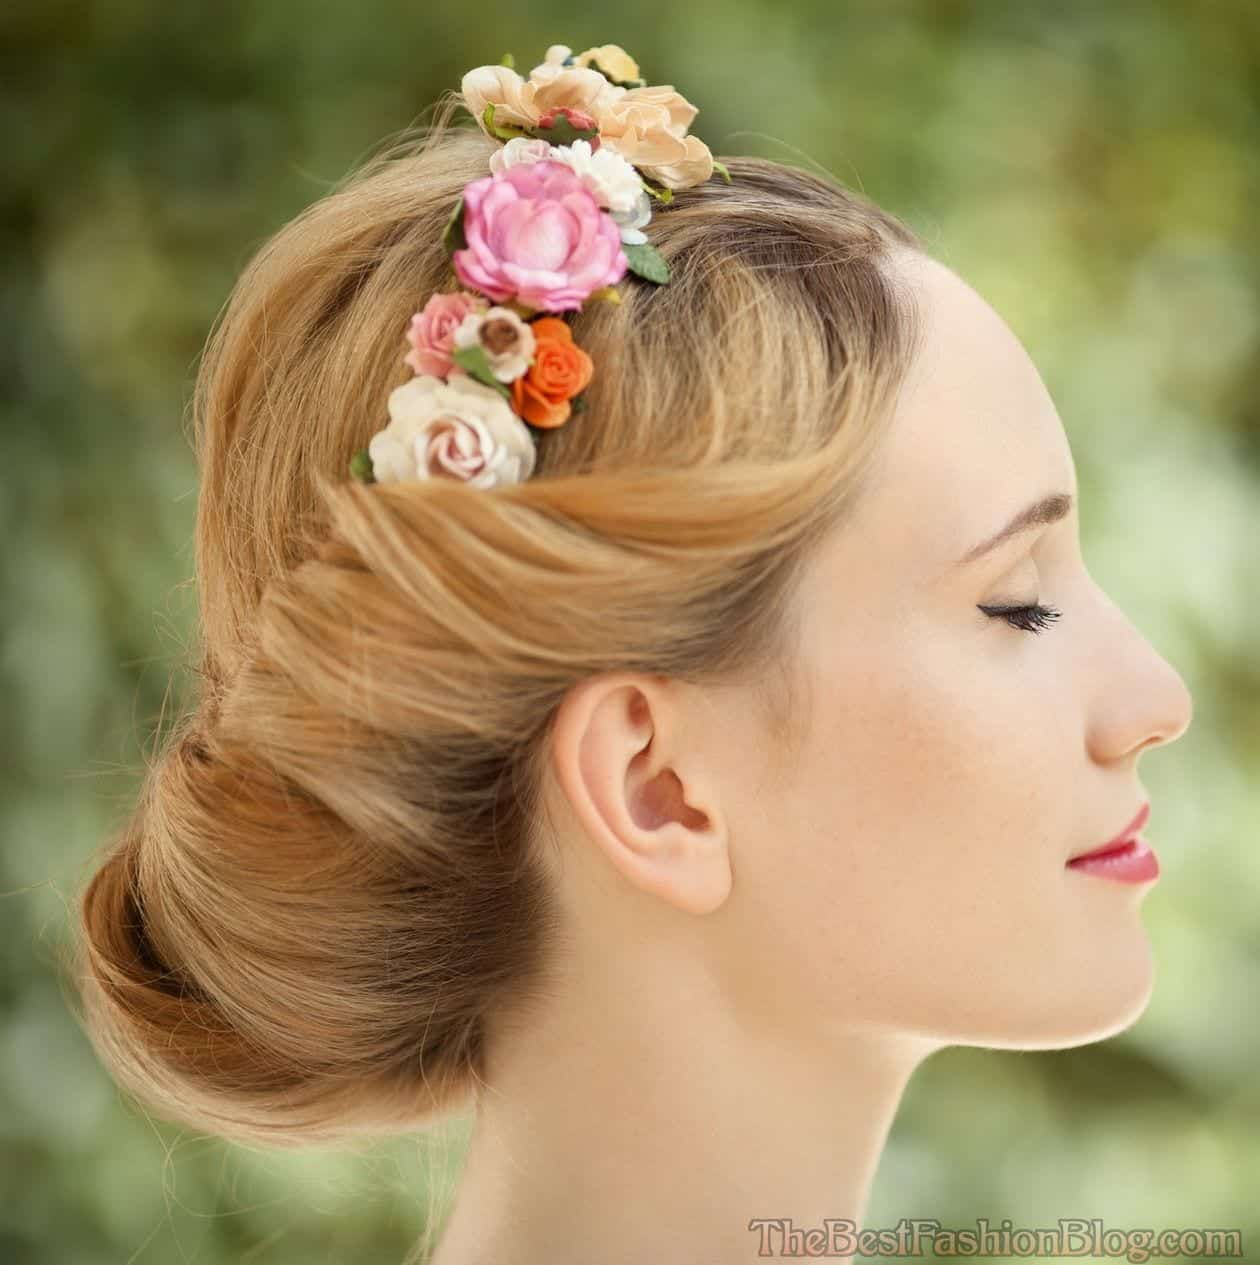 Cute Hairstyles for Teen Girls-27 Latest Hair Trends to follow